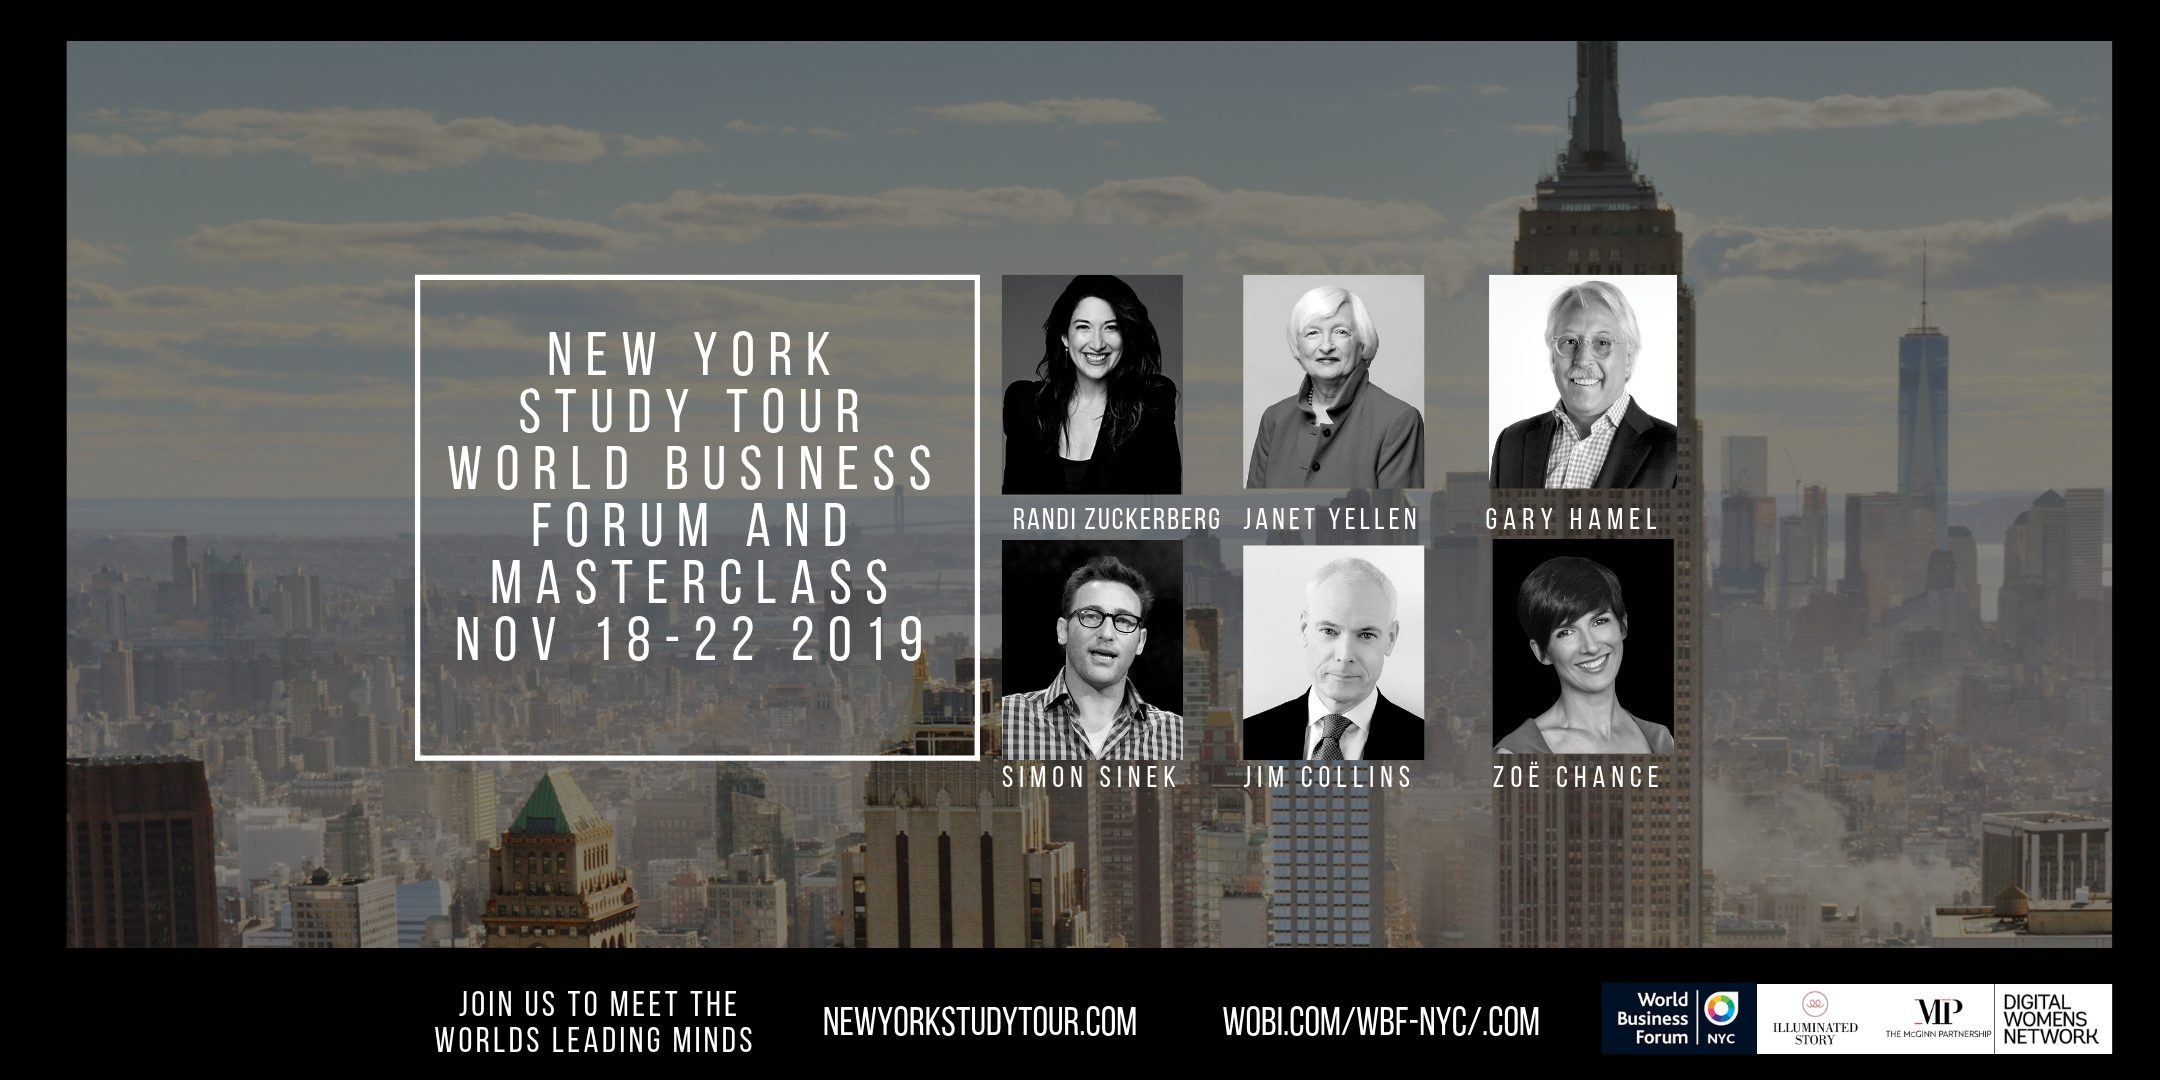 NEW YORK STUDY TOUR FOR BUSINESS INNOVATION & LEADERSHIP